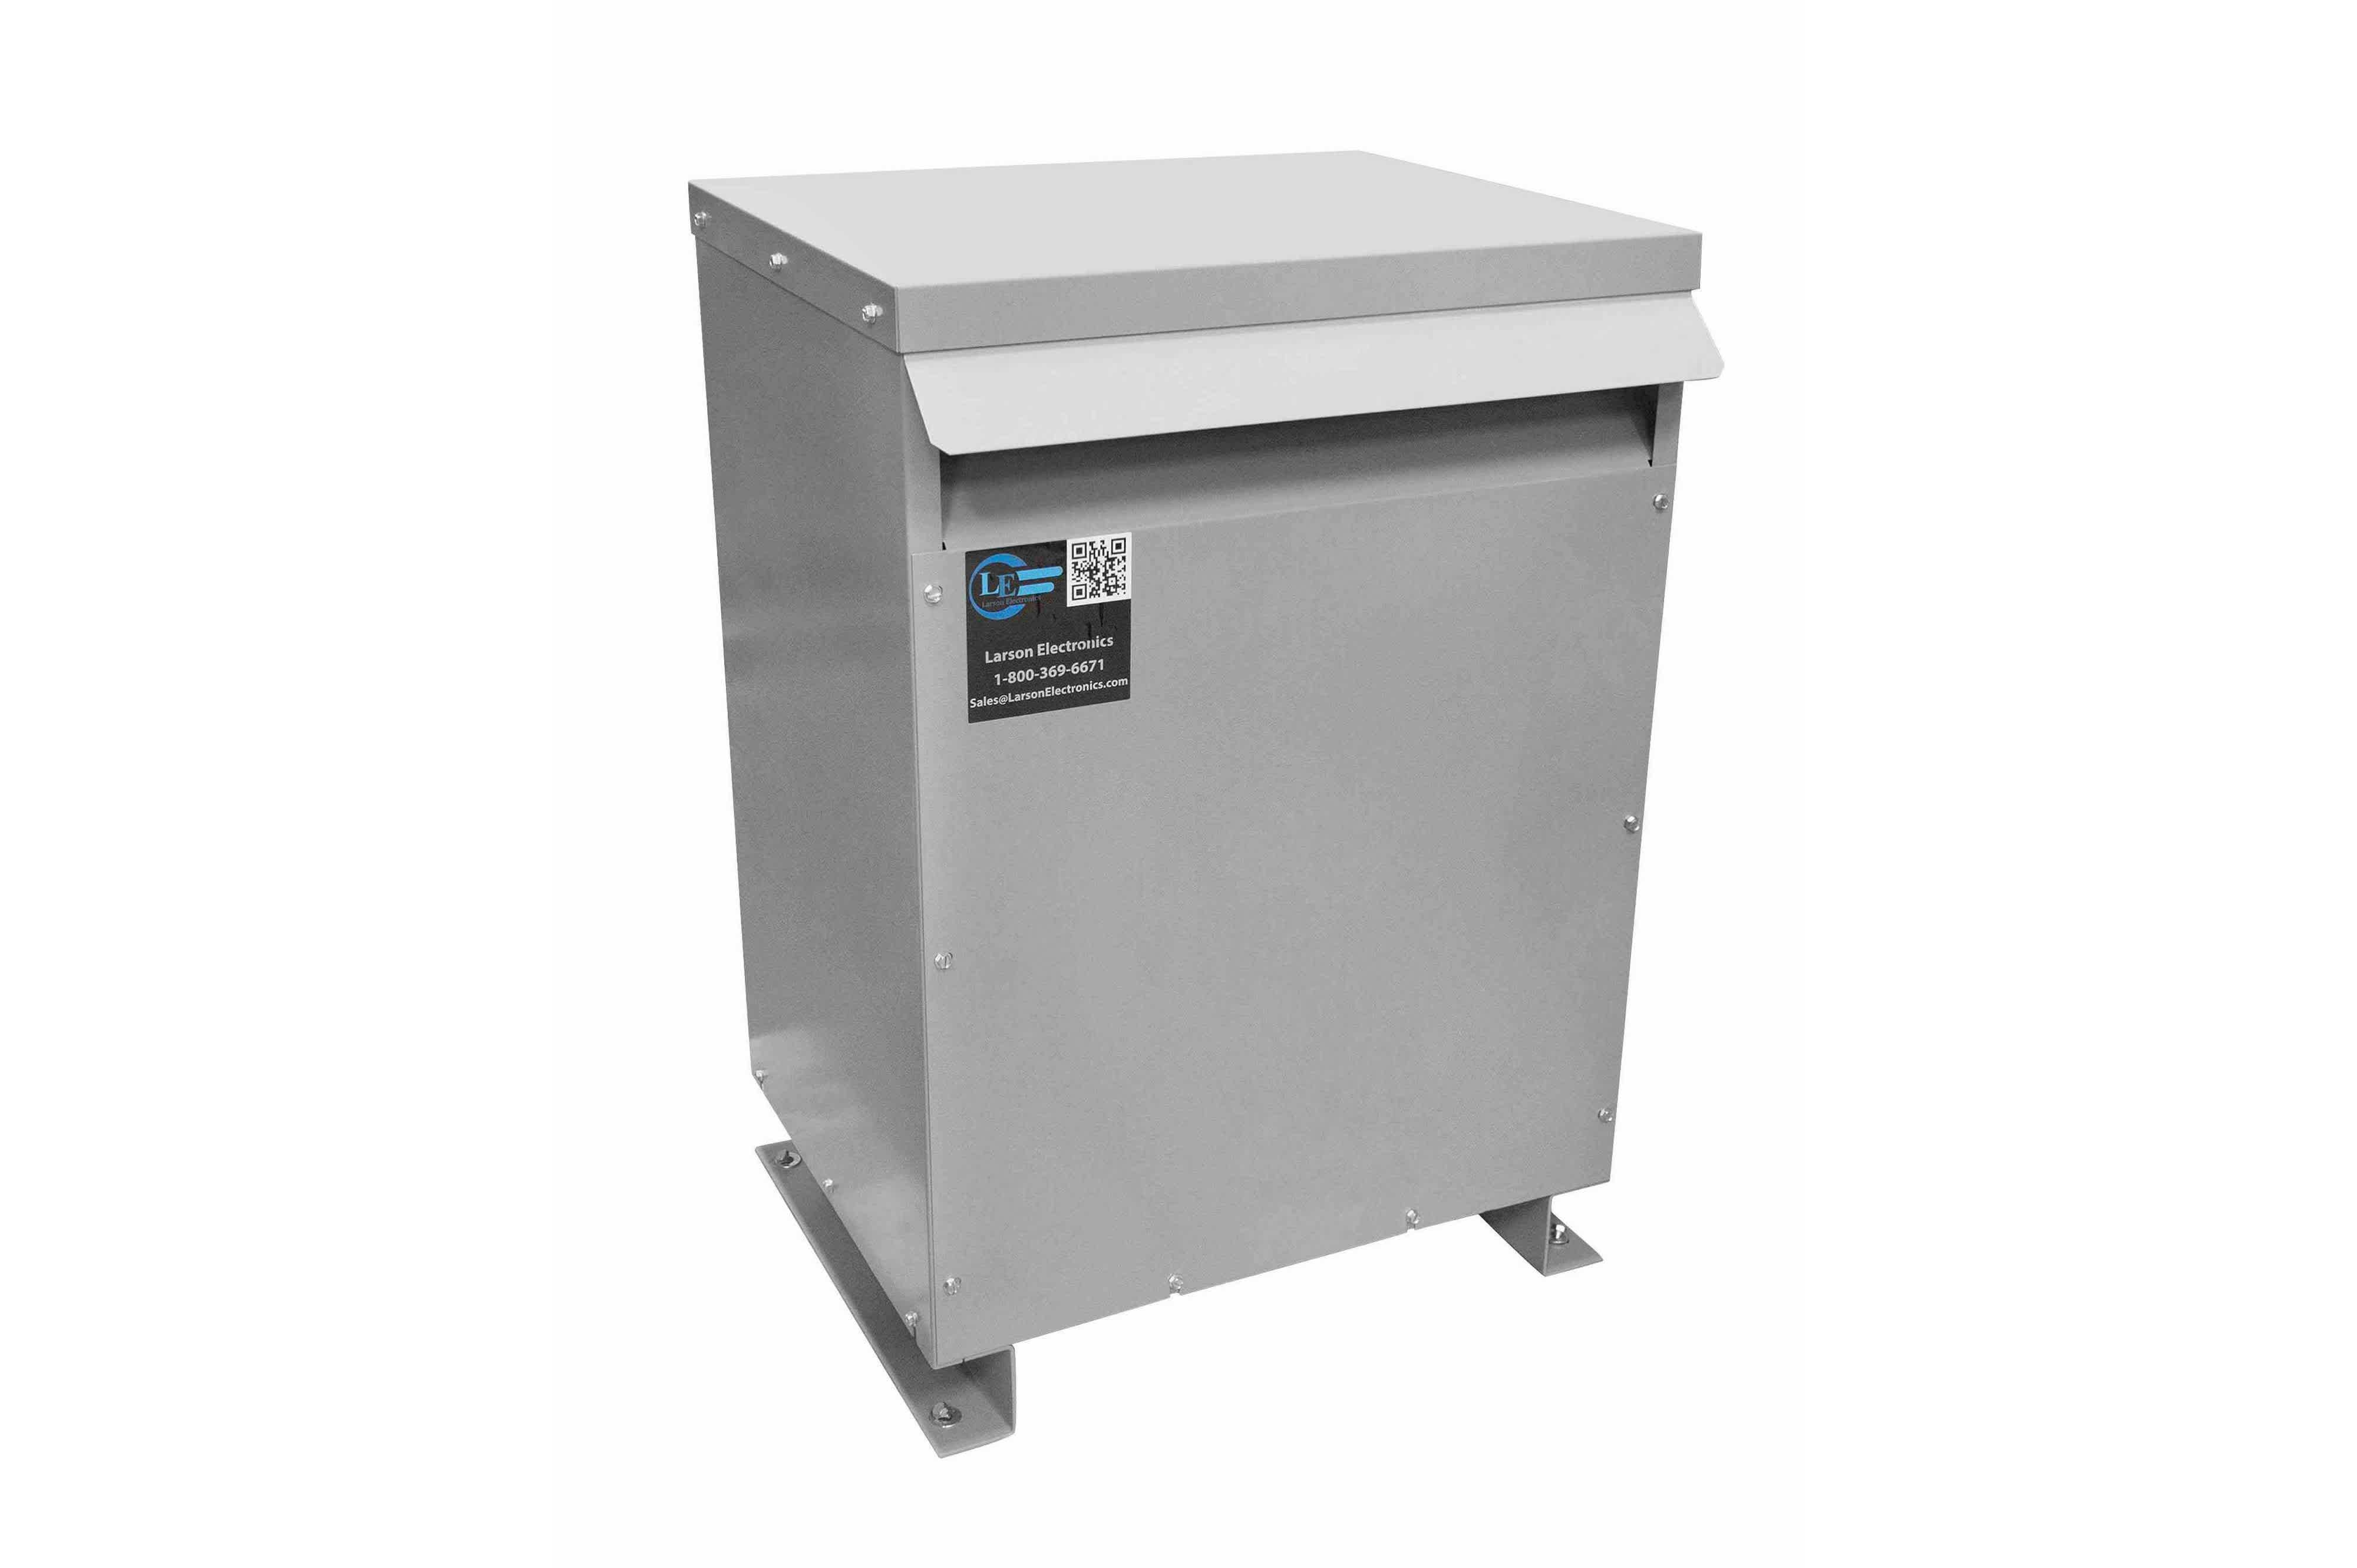 200 kVA 3PH DOE Transformer, 480V Delta Primary, 600Y/347 Wye-N Secondary, N3R, Ventilated, 60 Hz